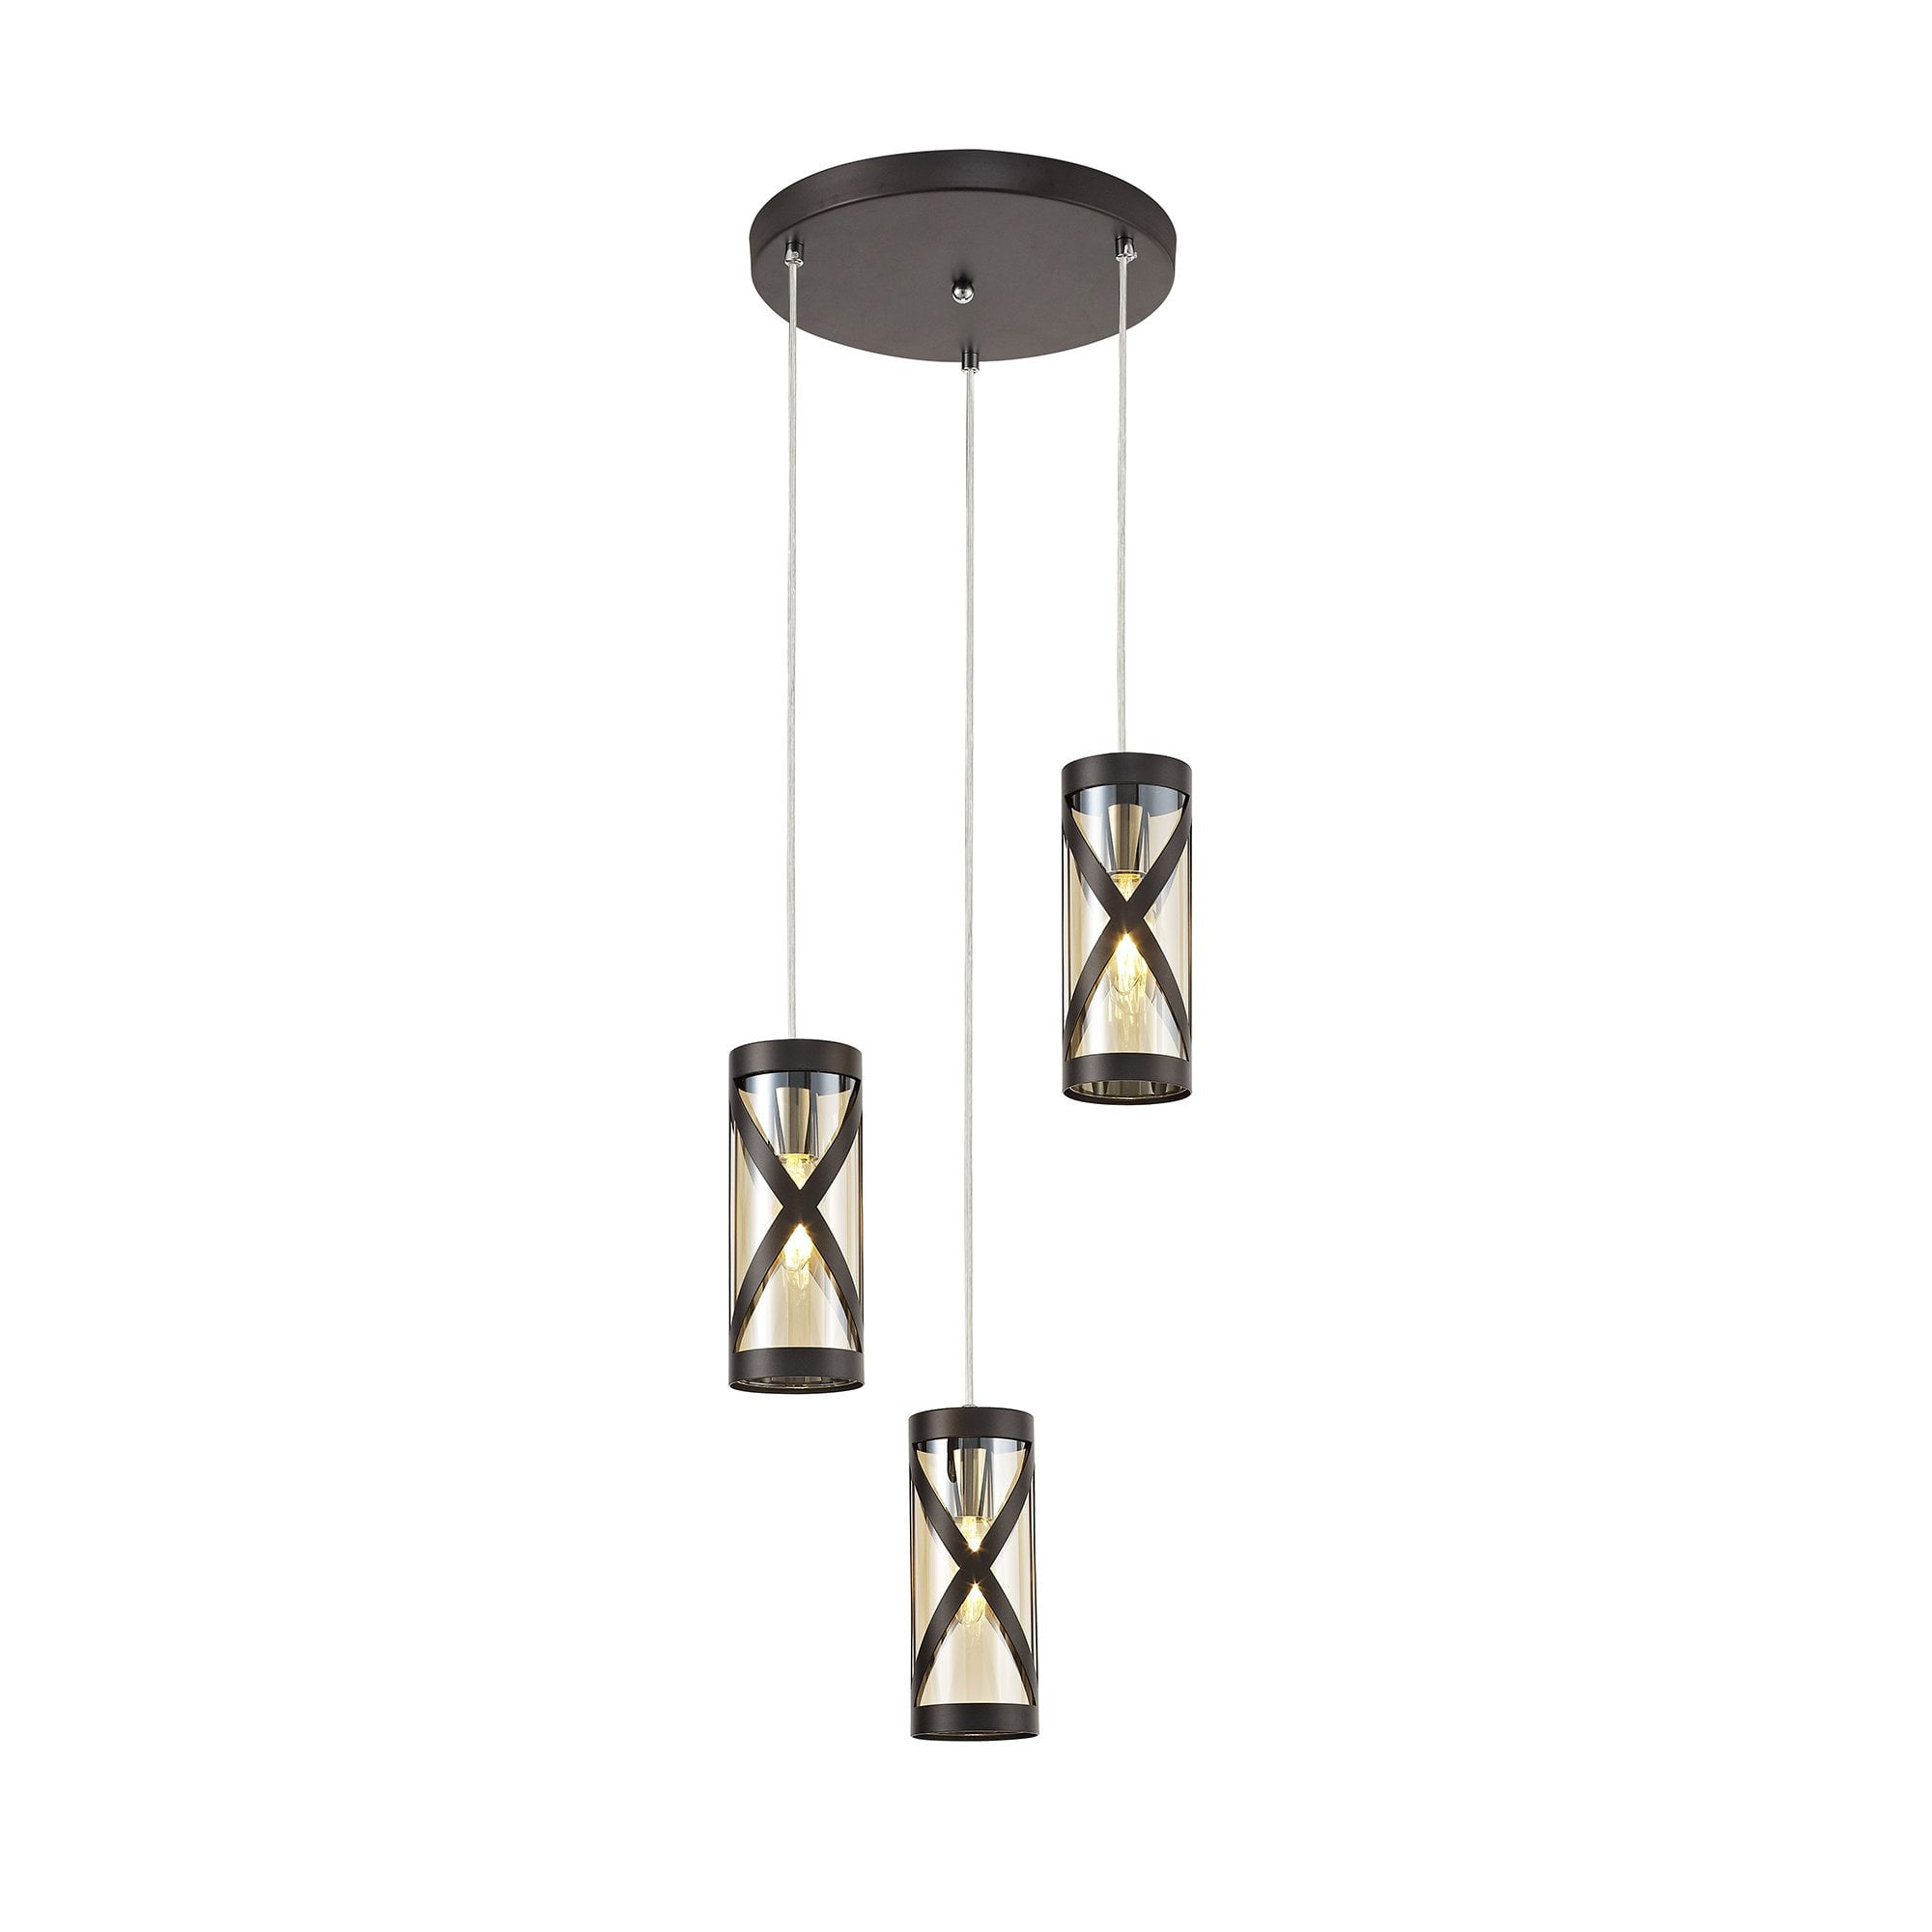 Dusk Collection Harberton Three Light Round Pendant In Oiled Bronze Polished Chrome Amber Fitting Style From Dusk Lighting Uk